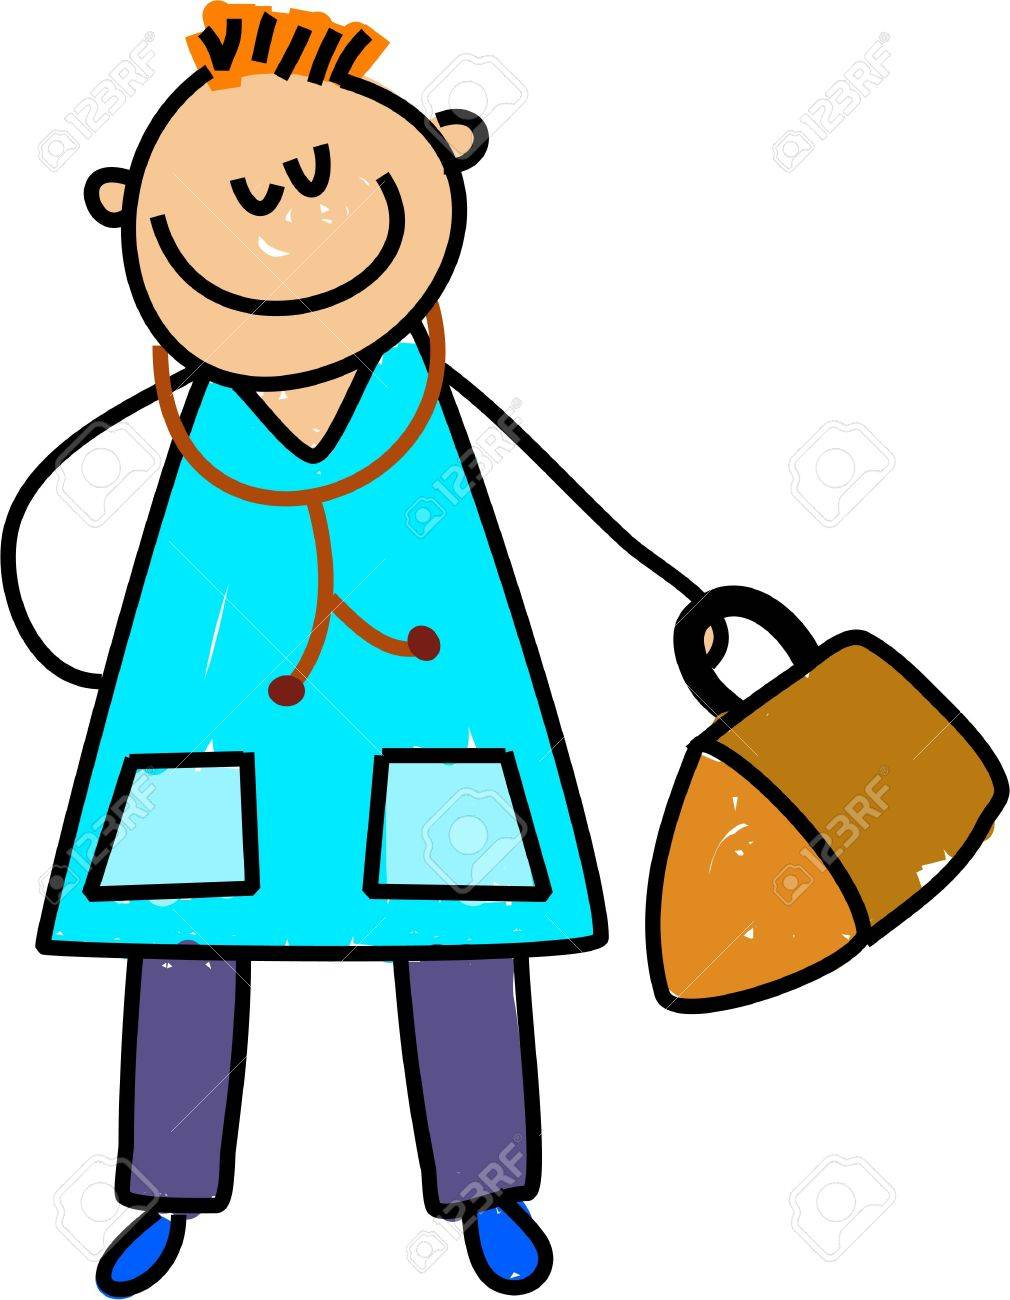 I Want To Be A Doctor When I Grow Up - Toddler Art Series Stock ...